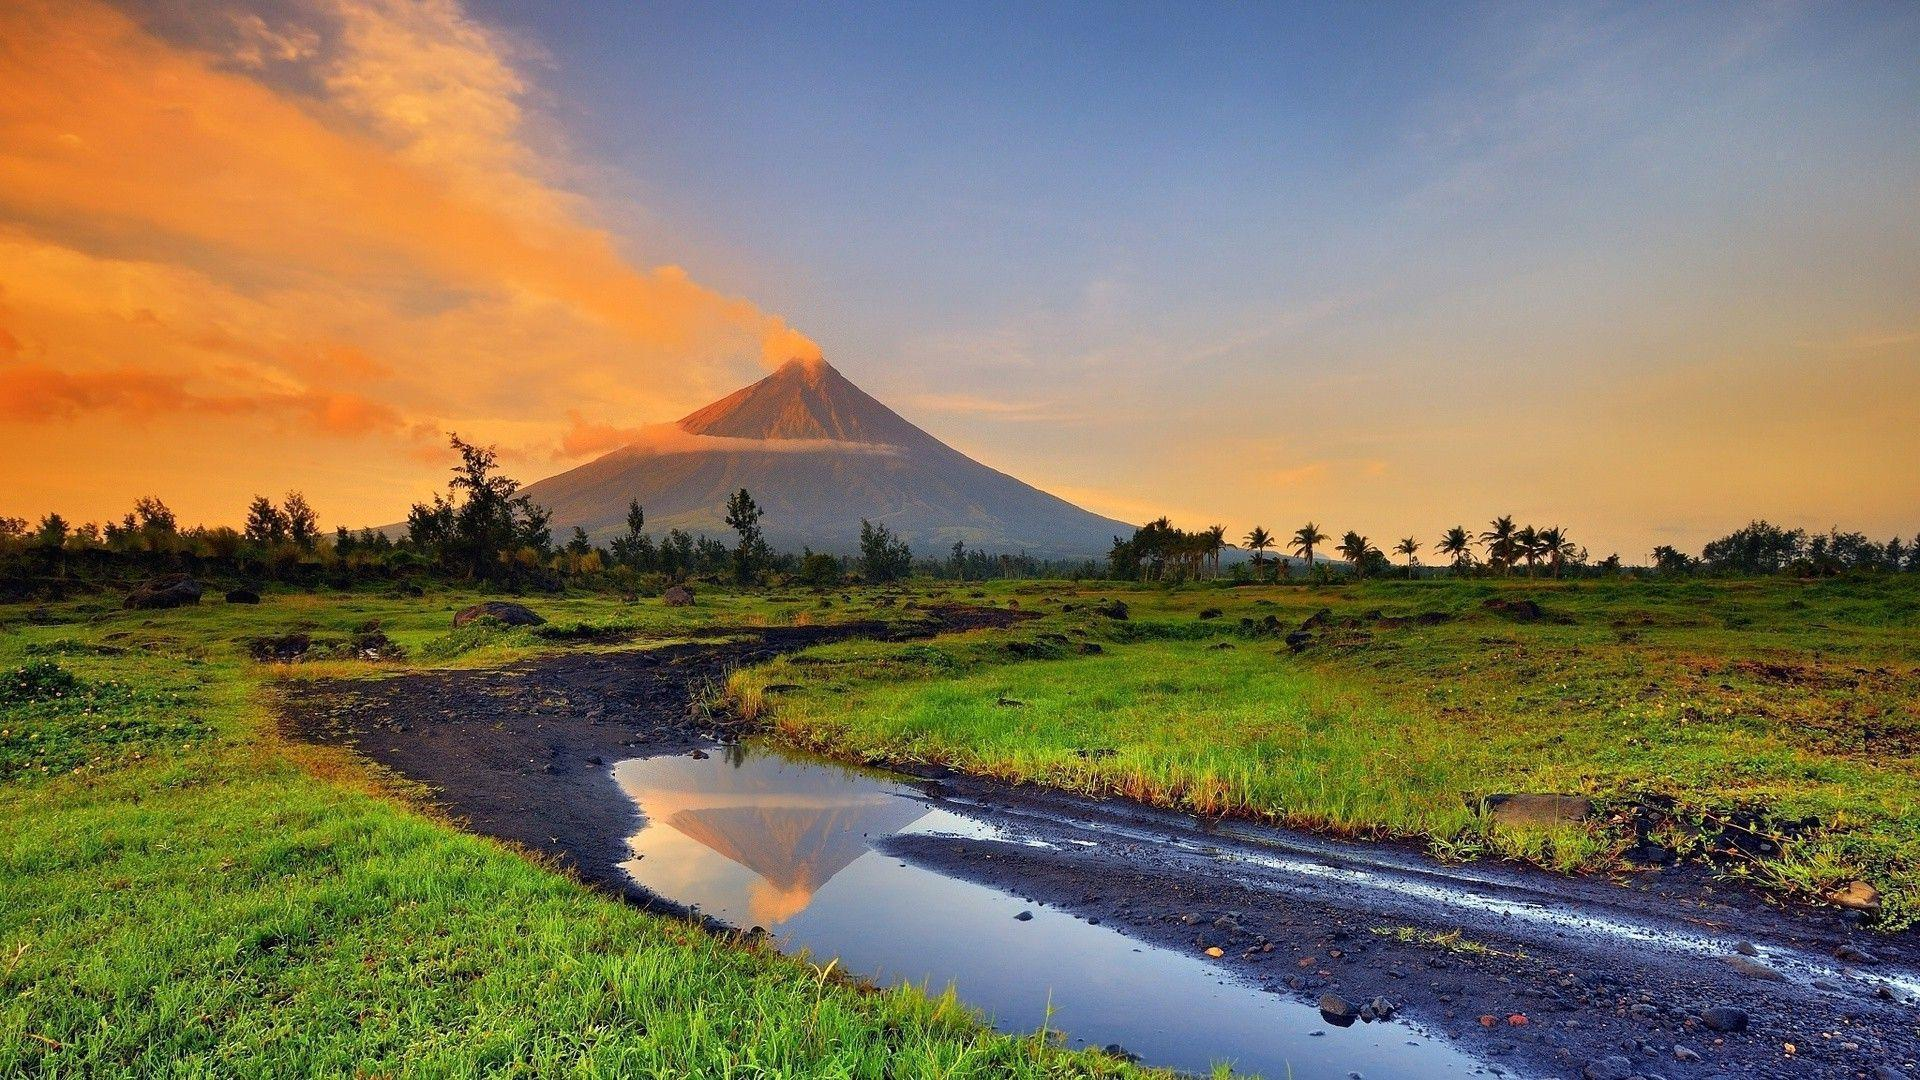 landscape, Volcano, Stream, Smoke, Philippines Wallpapers HD ...